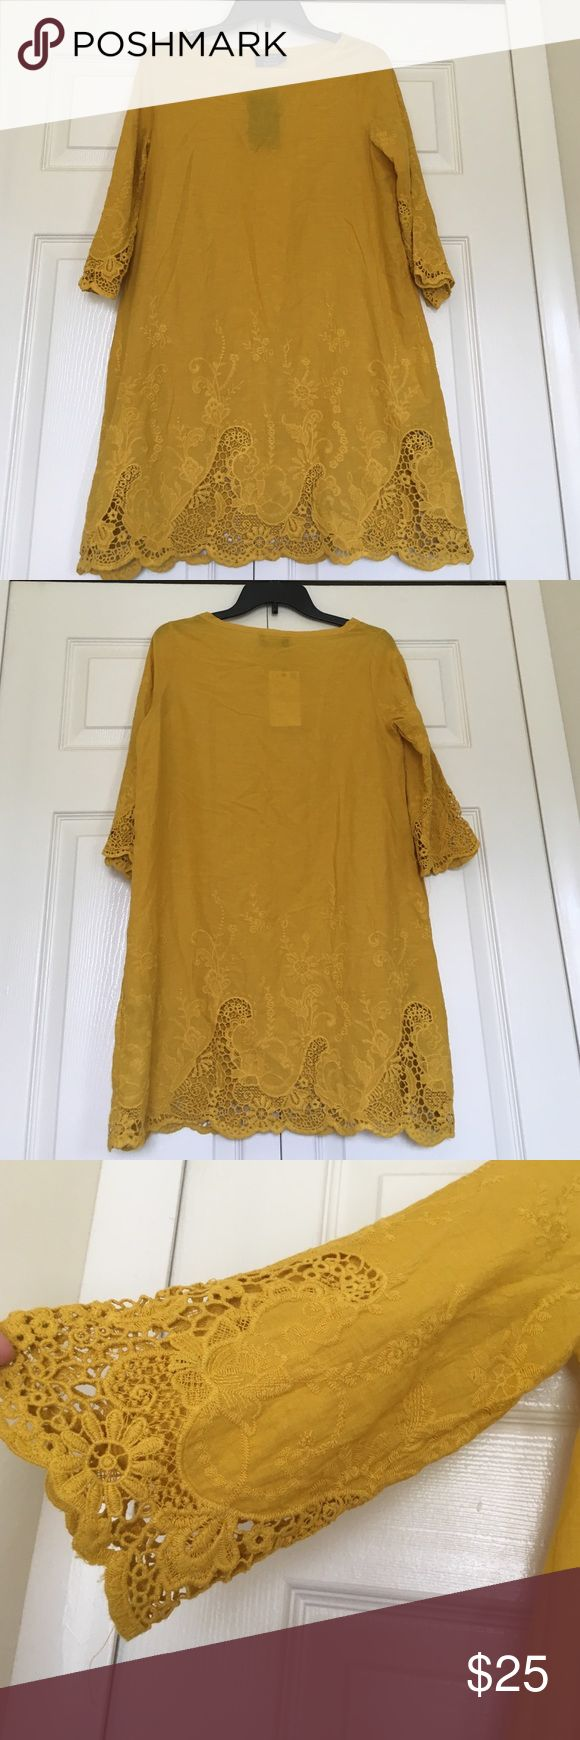 Zara Embroidered yellow beach dress Great yellow dress to wear. It is a bit see through Zara Dresses